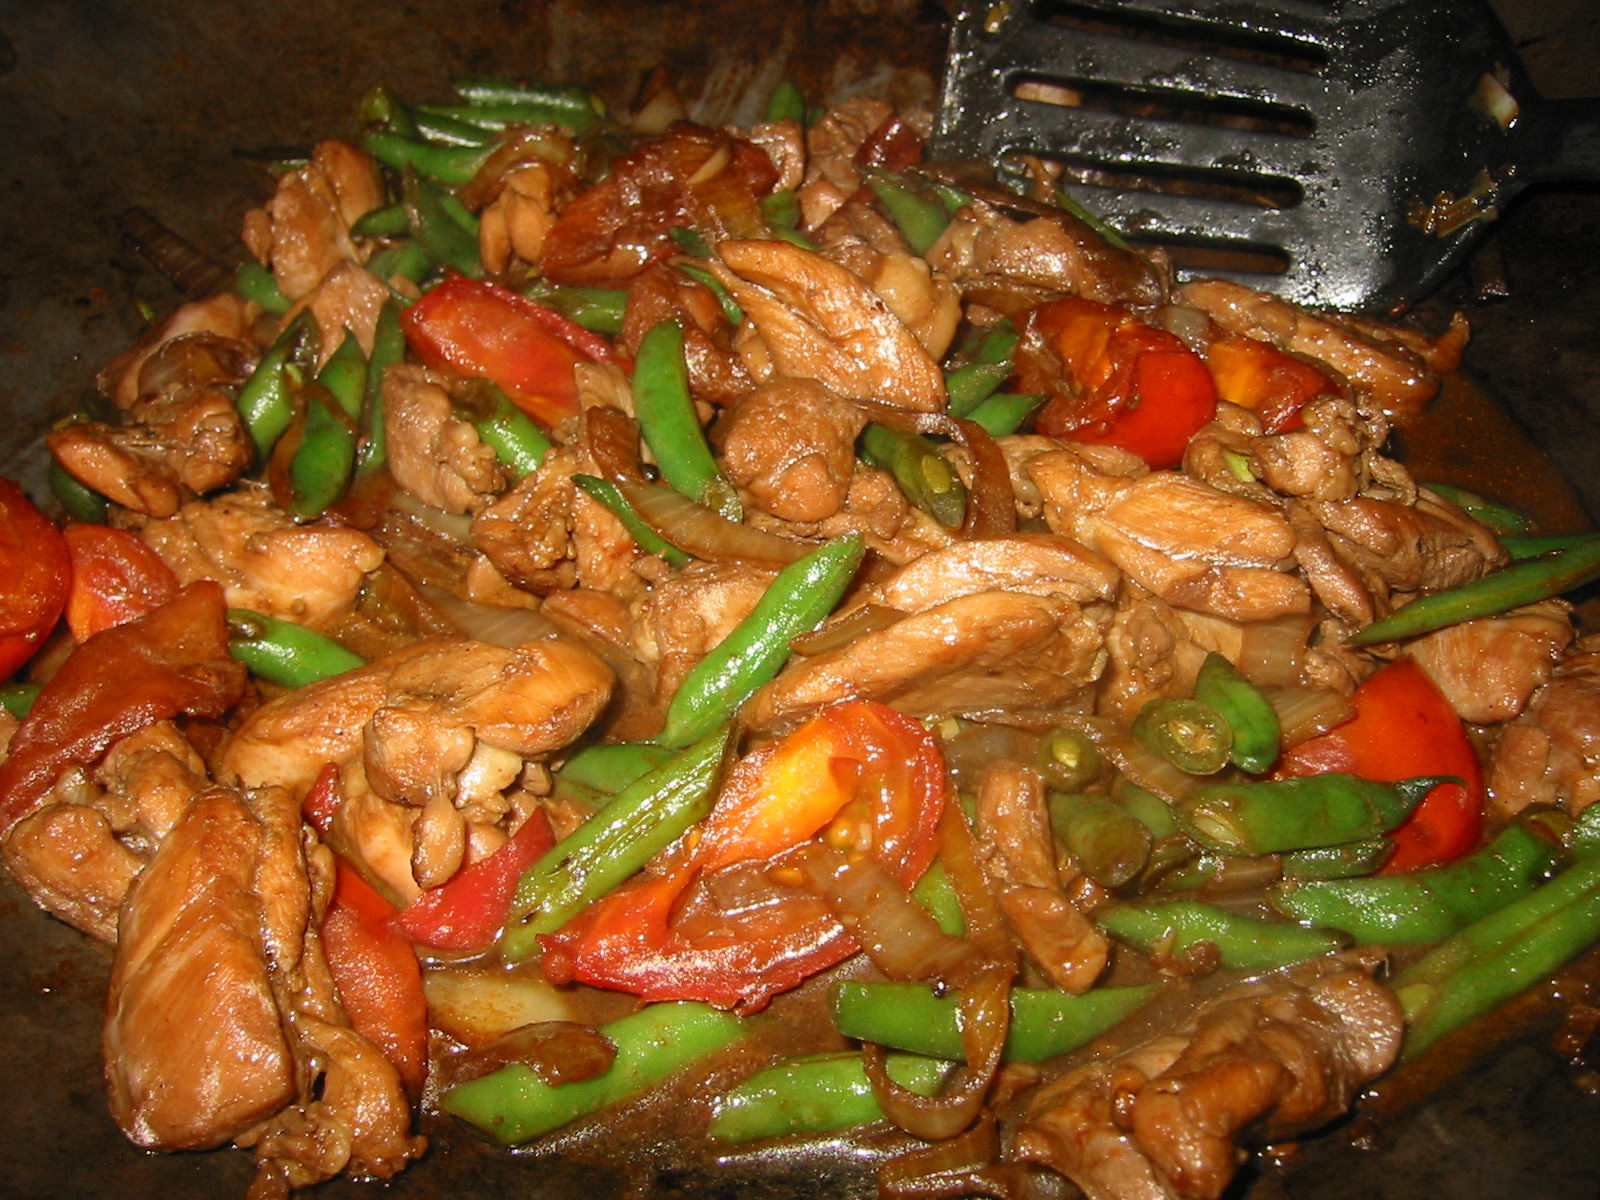 Chicken dish with no name in wok